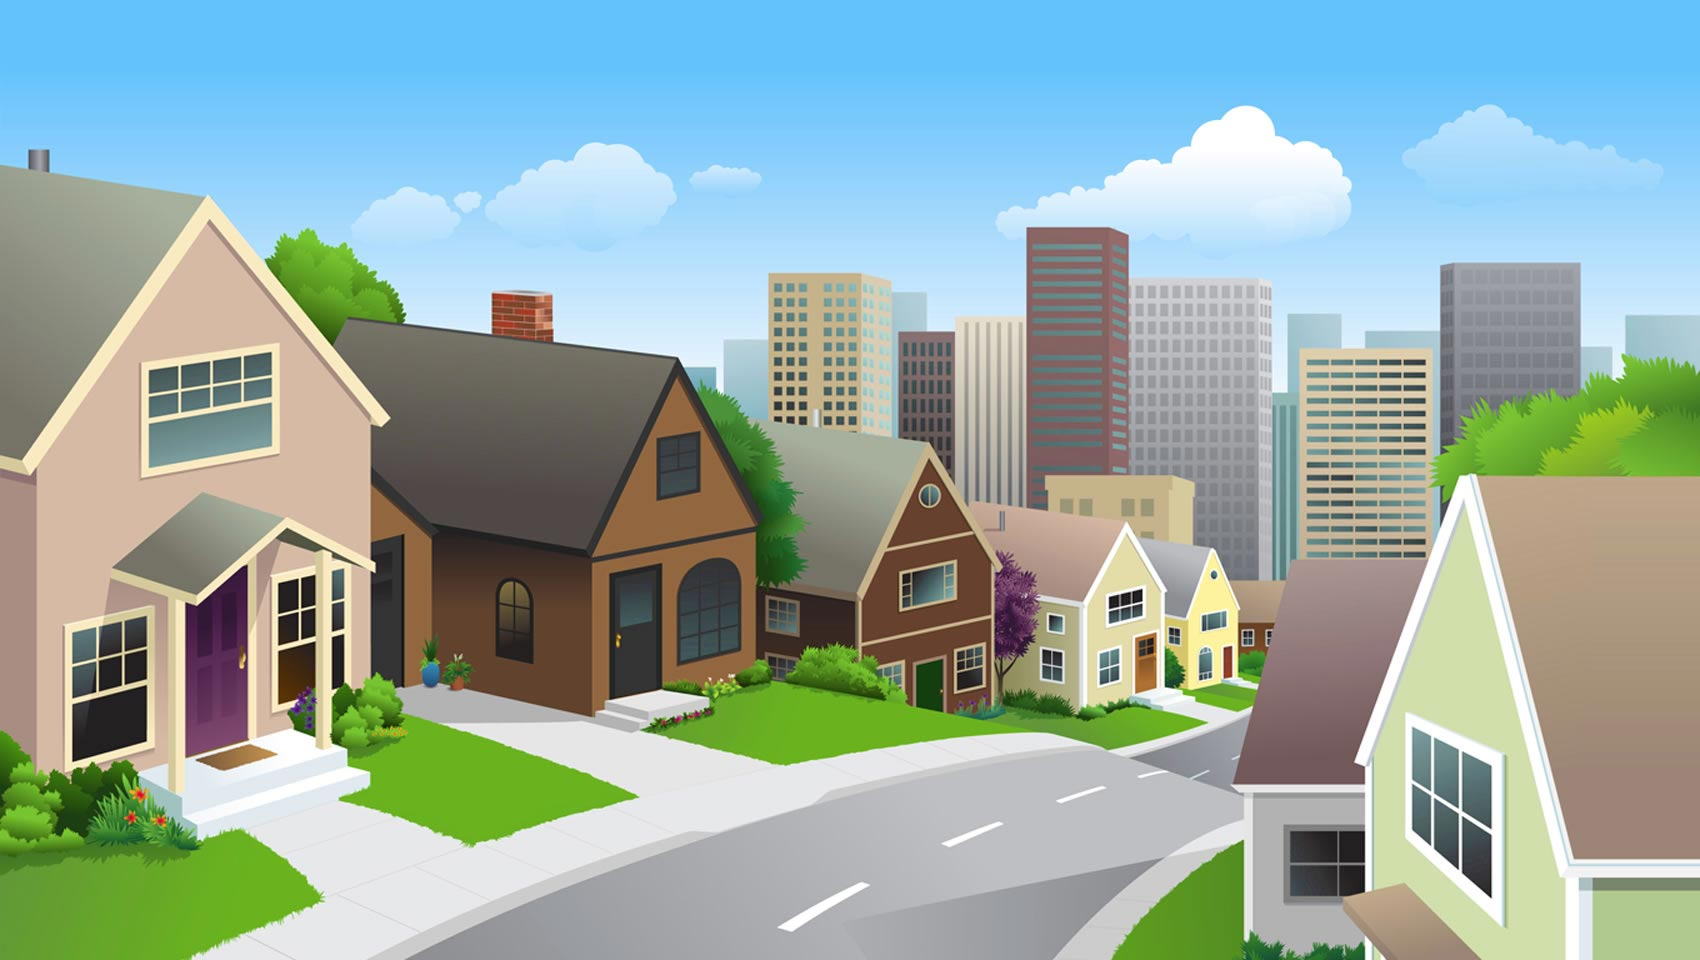 jpg library stock Free cliparts download clip. Neighbors clipart neighborhood street